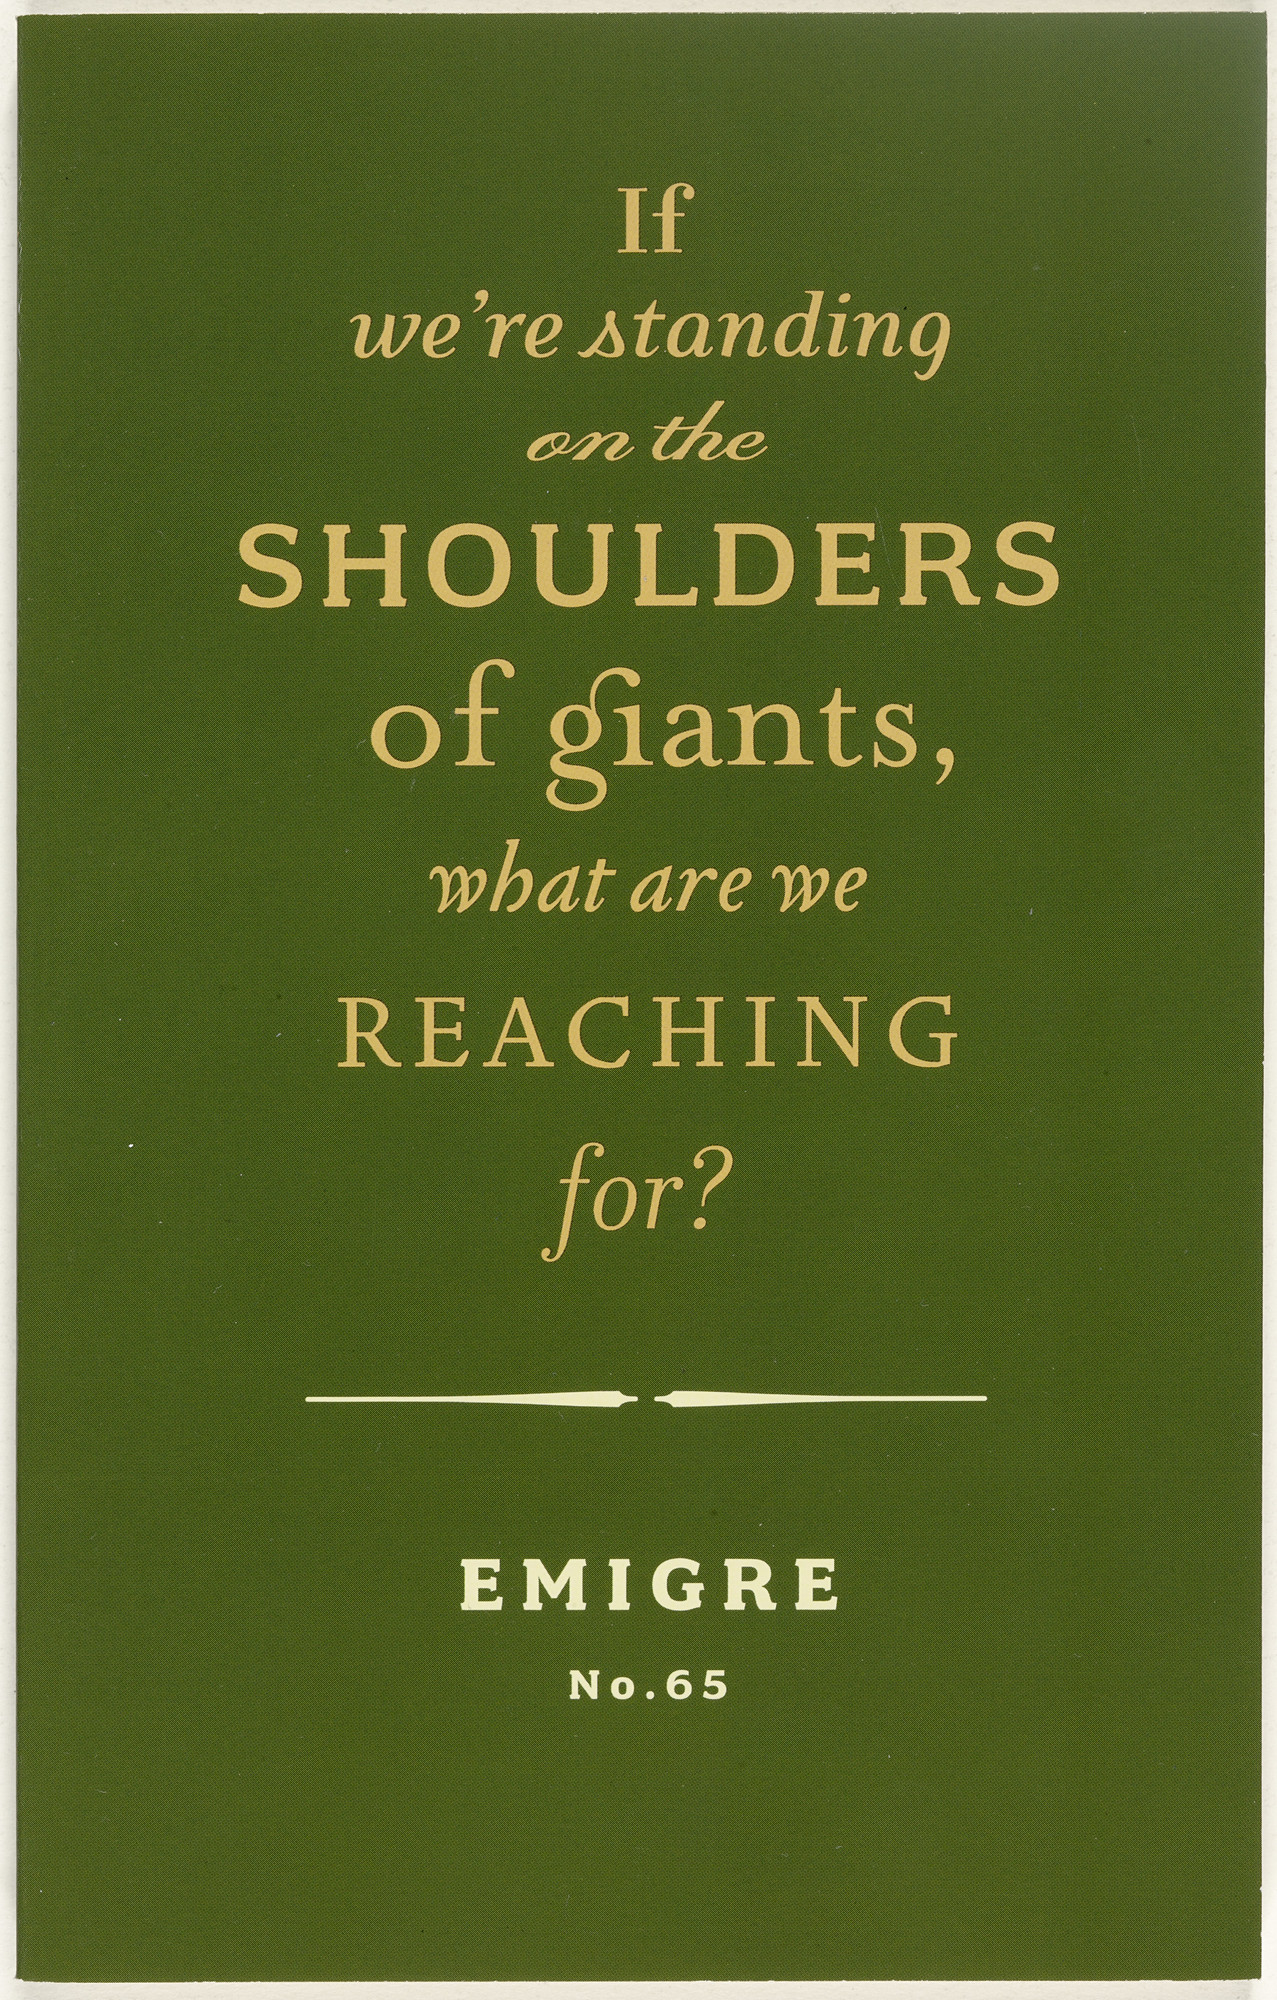 Emigre Inc., Rudy VanderLans, Zuzana Licko. Emigre 65, If We're Standing On The Shoulders Of Giants, What Are We Reaching For?. 2003